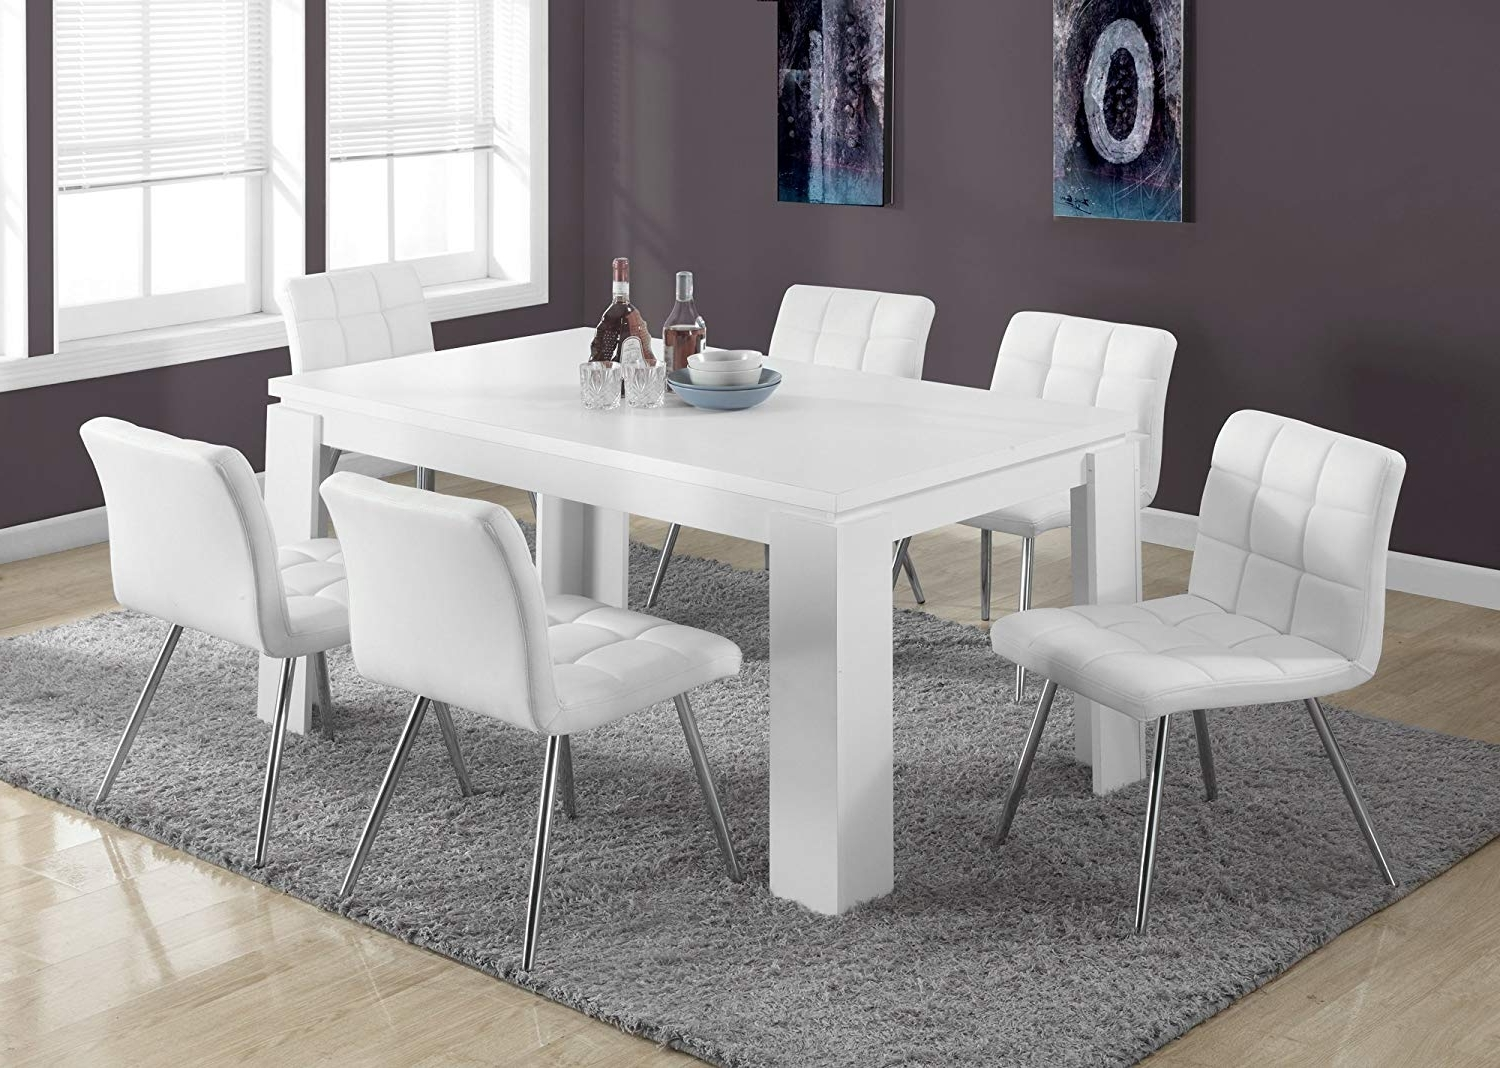 Amazon – Monarch Specialties I 1056, Dining Table, White Hollow For Fashionable White Dining Tables (View 3 of 25)